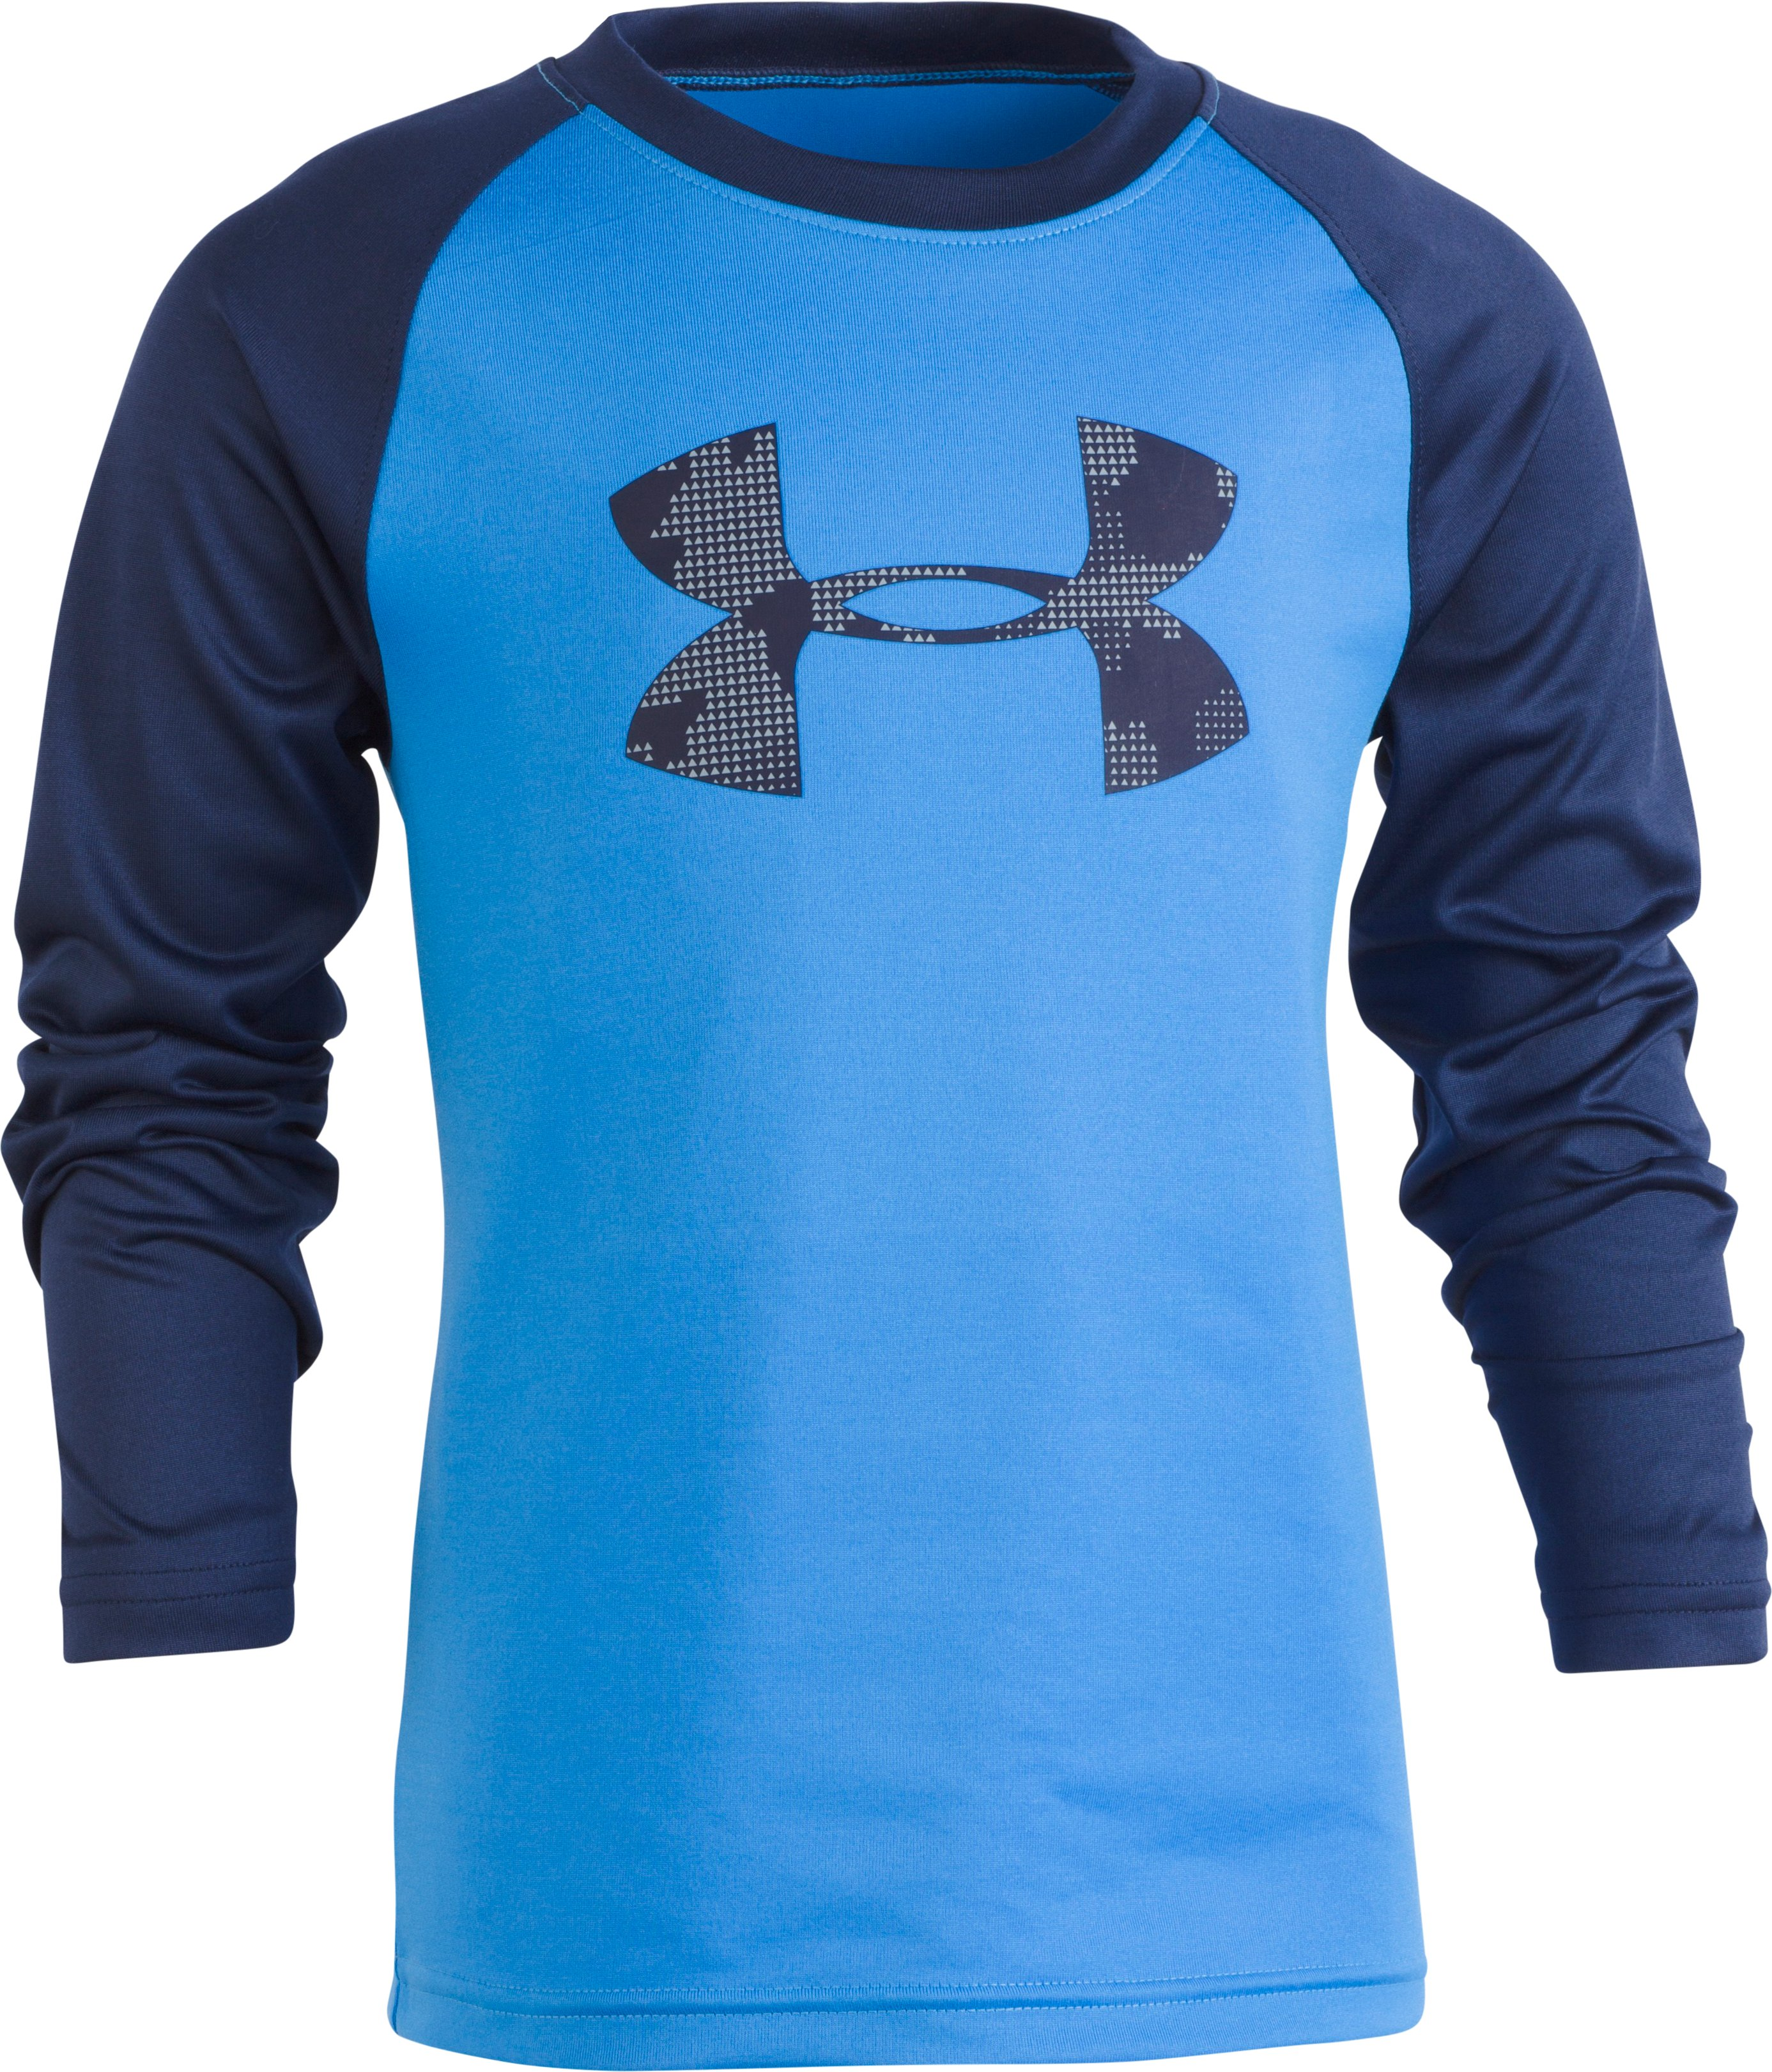 Boys' Pre-School UA Utility Camo Big Logo Long Sleeve, Mako Blue, zoomed